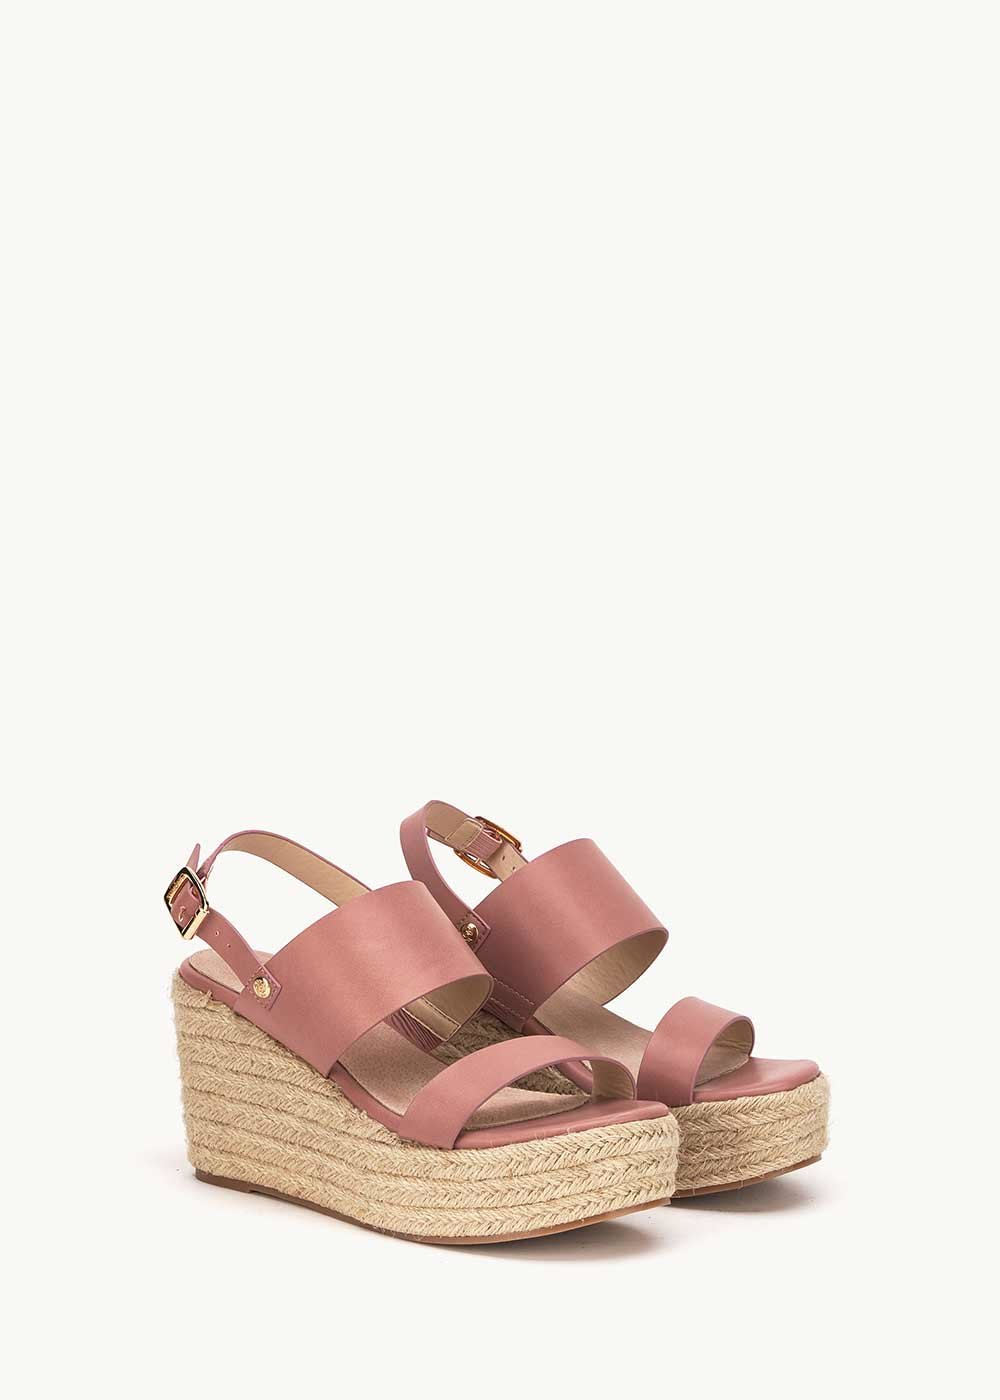 Shey sandal with straw wedge heel - Skin - Woman